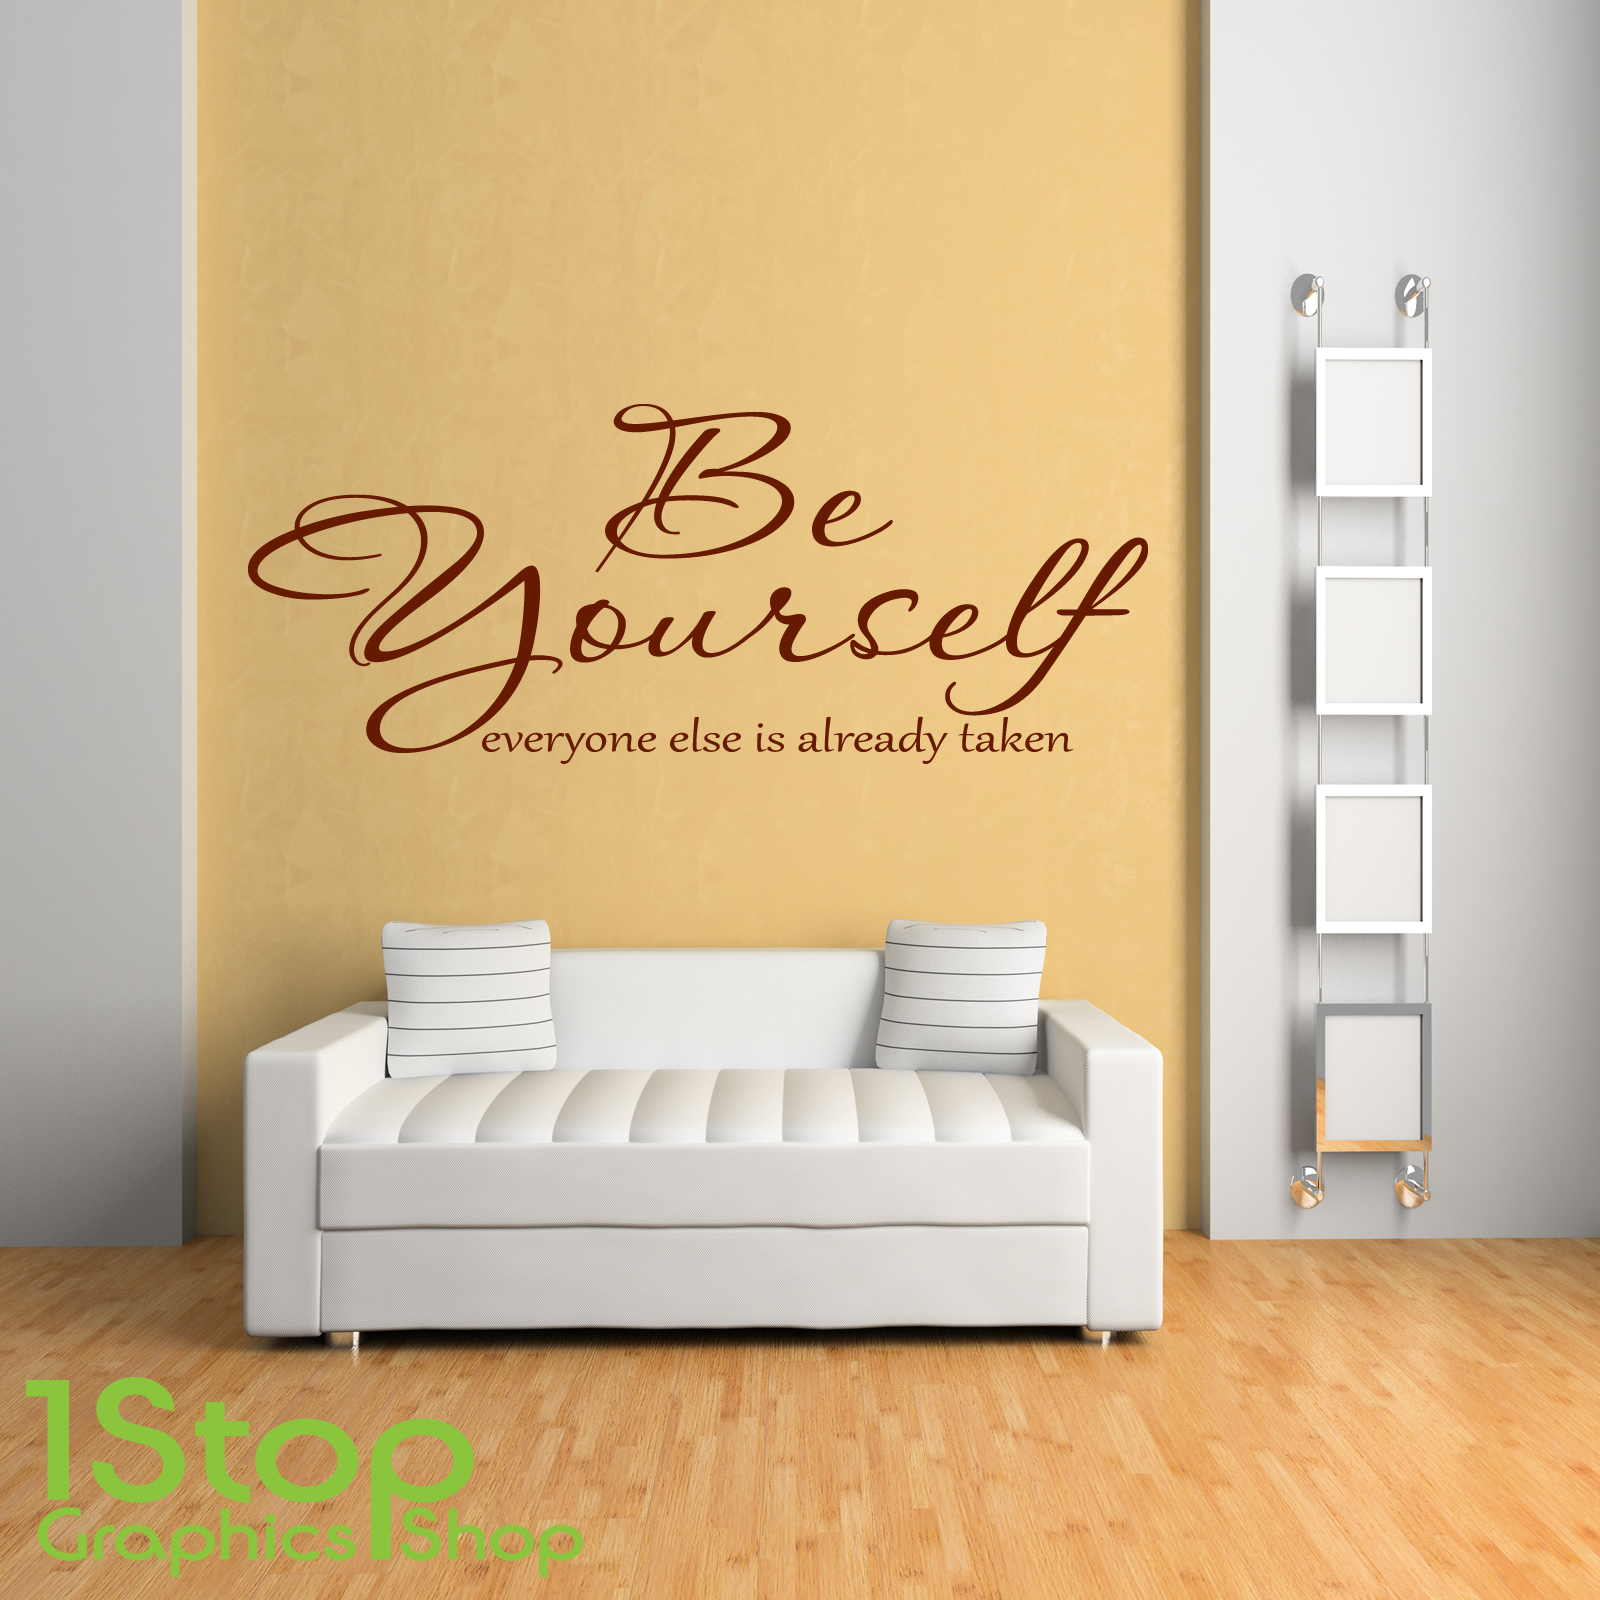 BE YOURSELF WALL STICKER QUOTE - HOME BEDROOM WALL ART DECAL X76 | eBay